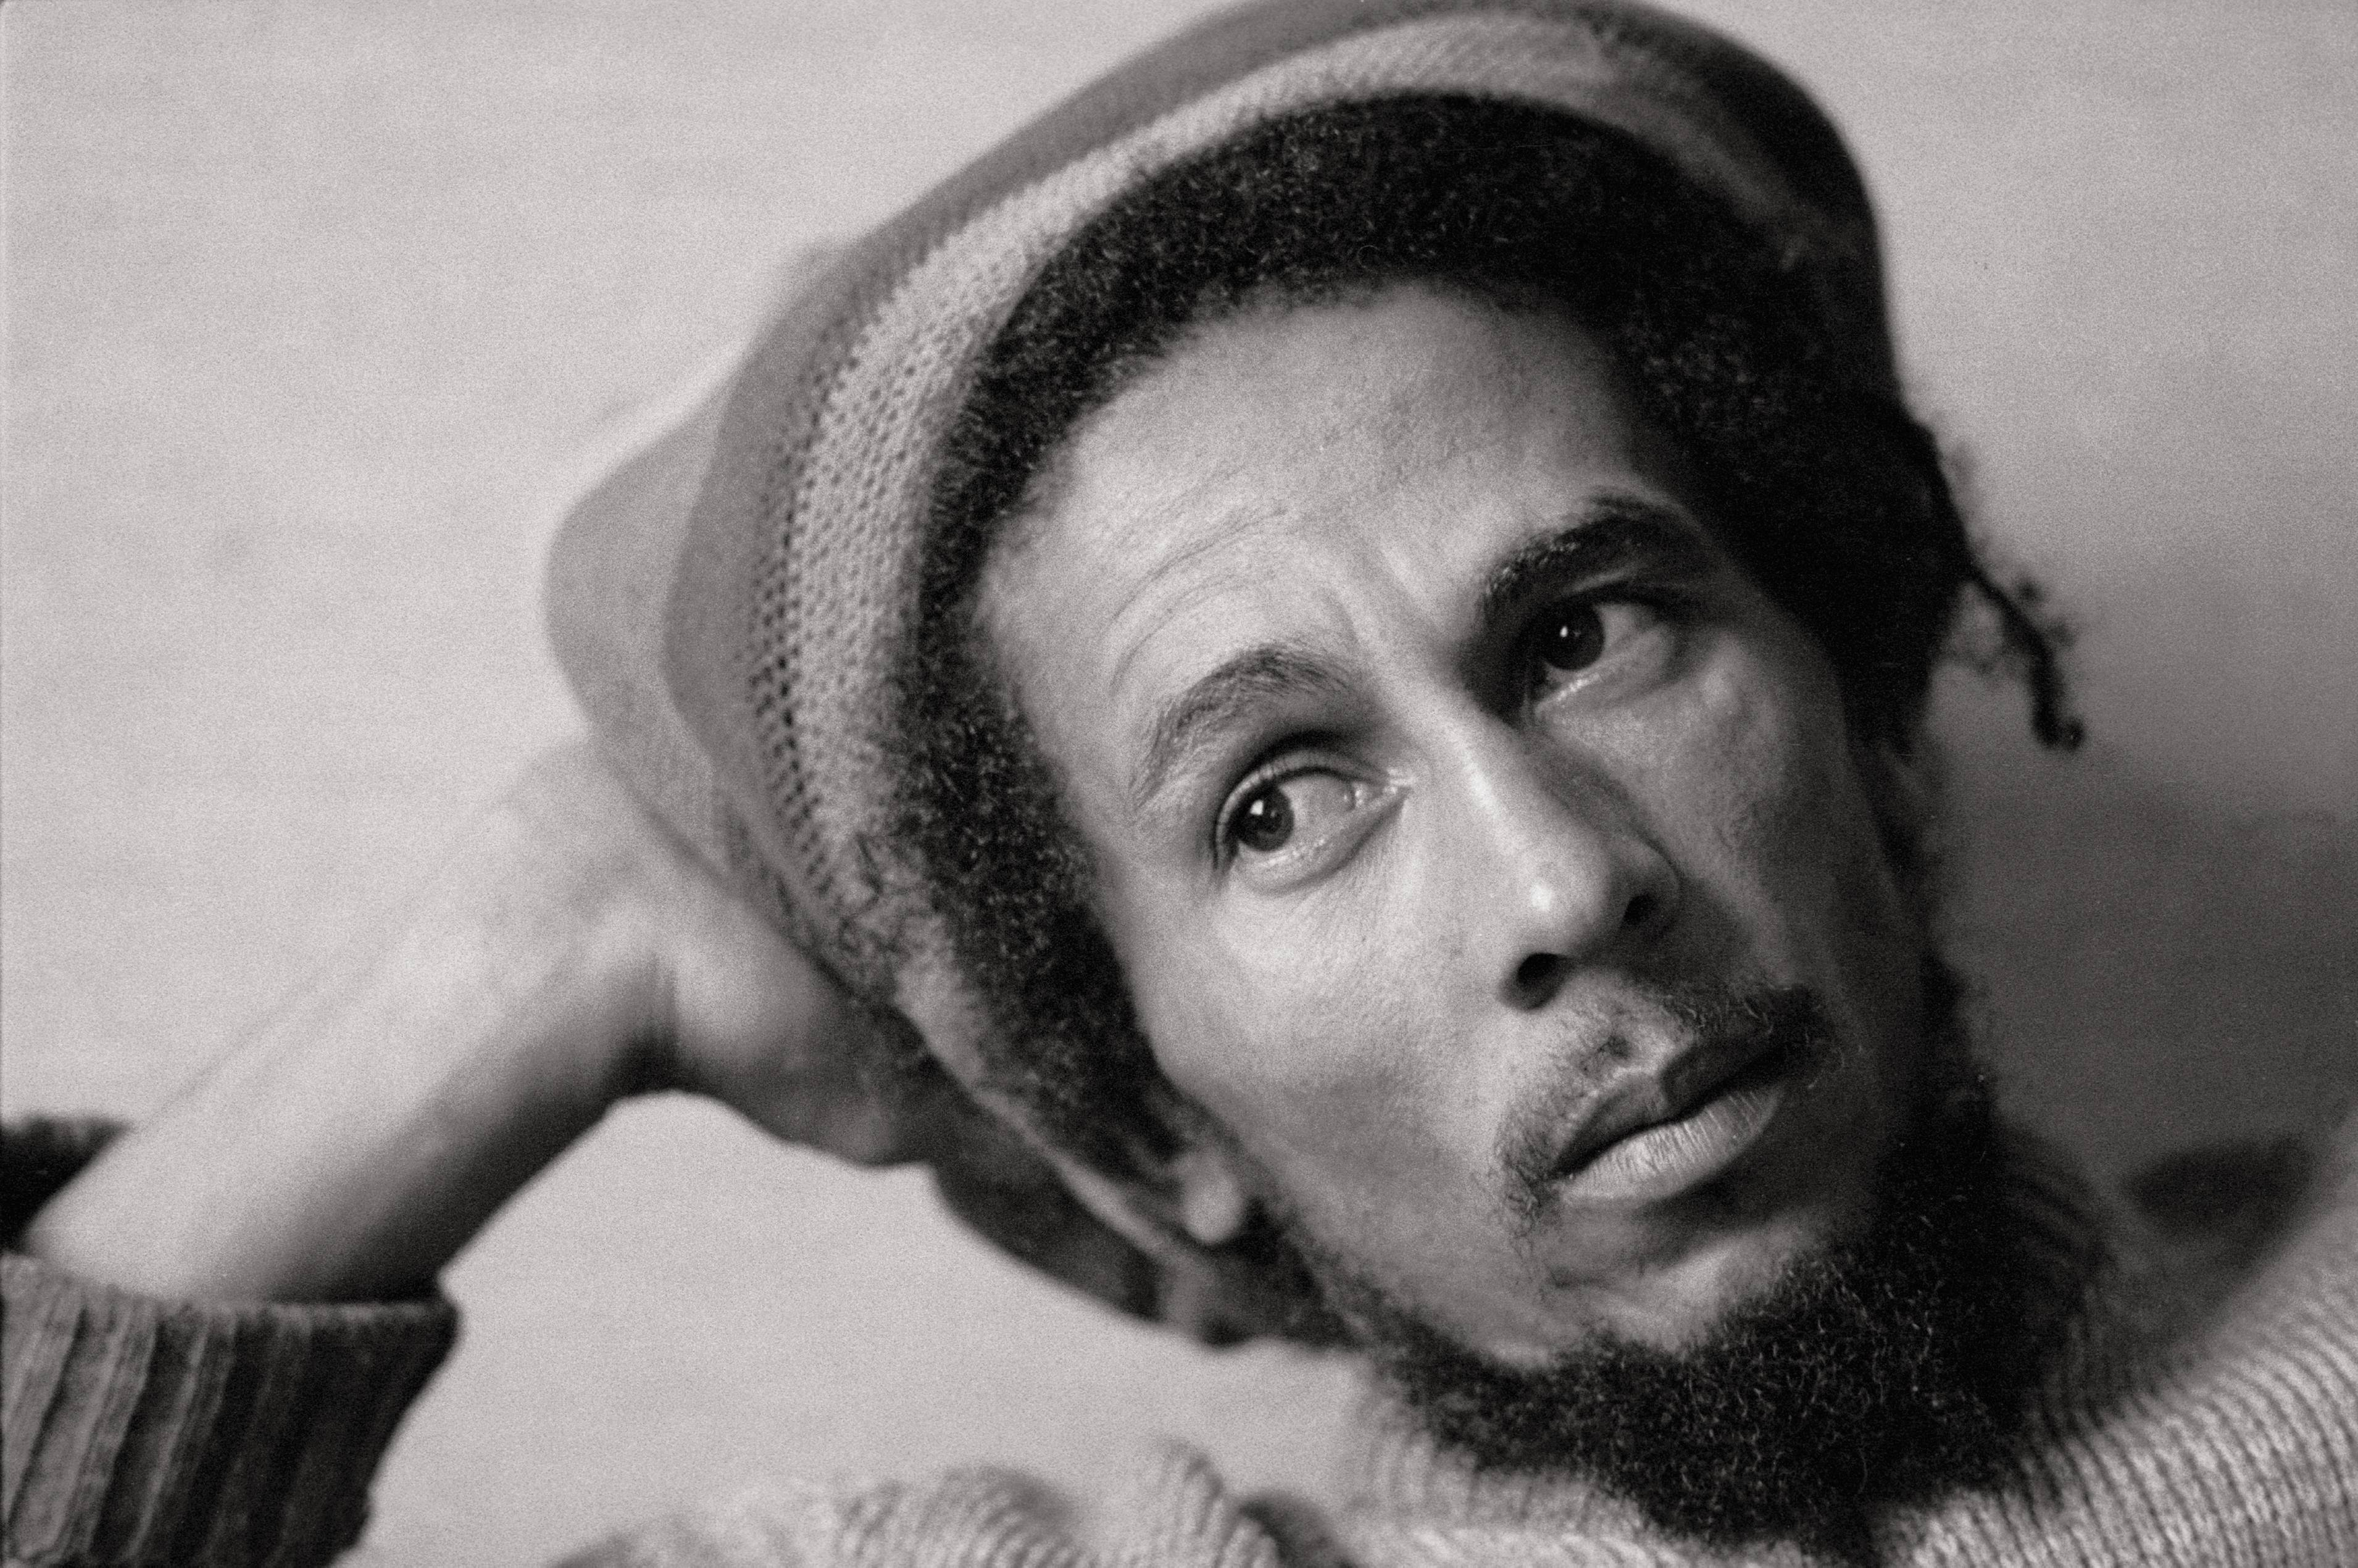 Image Source: Getty Images/Portrait of Bob Marley